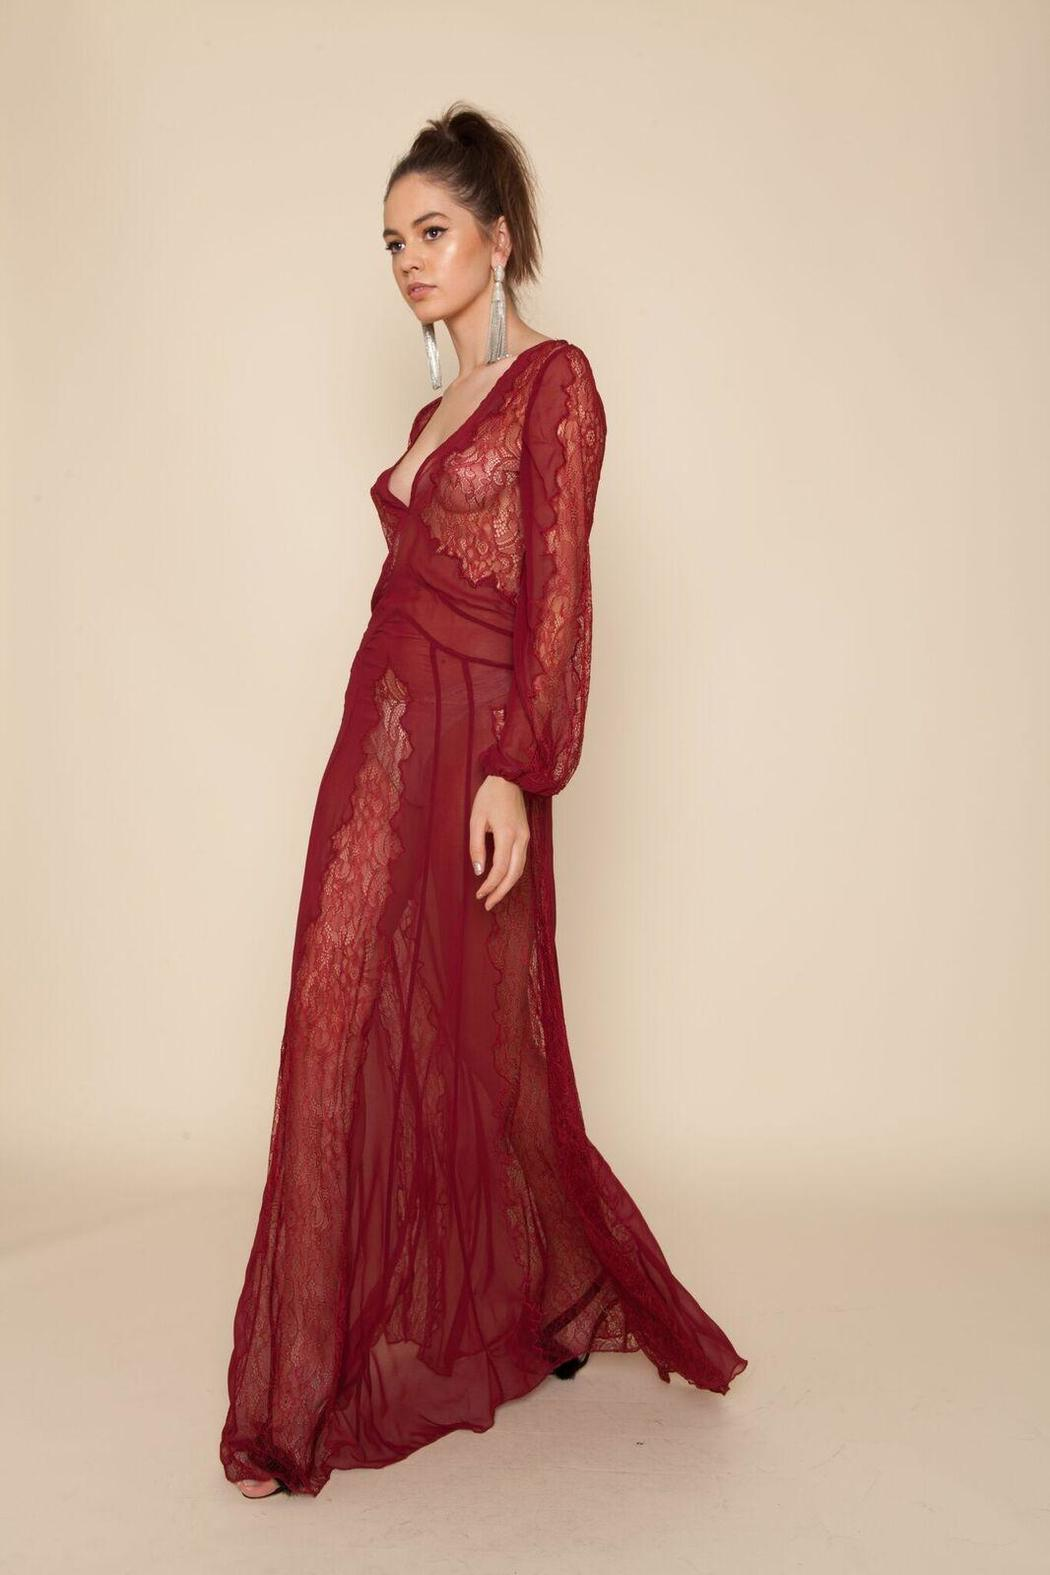 Stone Cold Fox Vermont Lace Gown from California by Brigitte & Stone ...